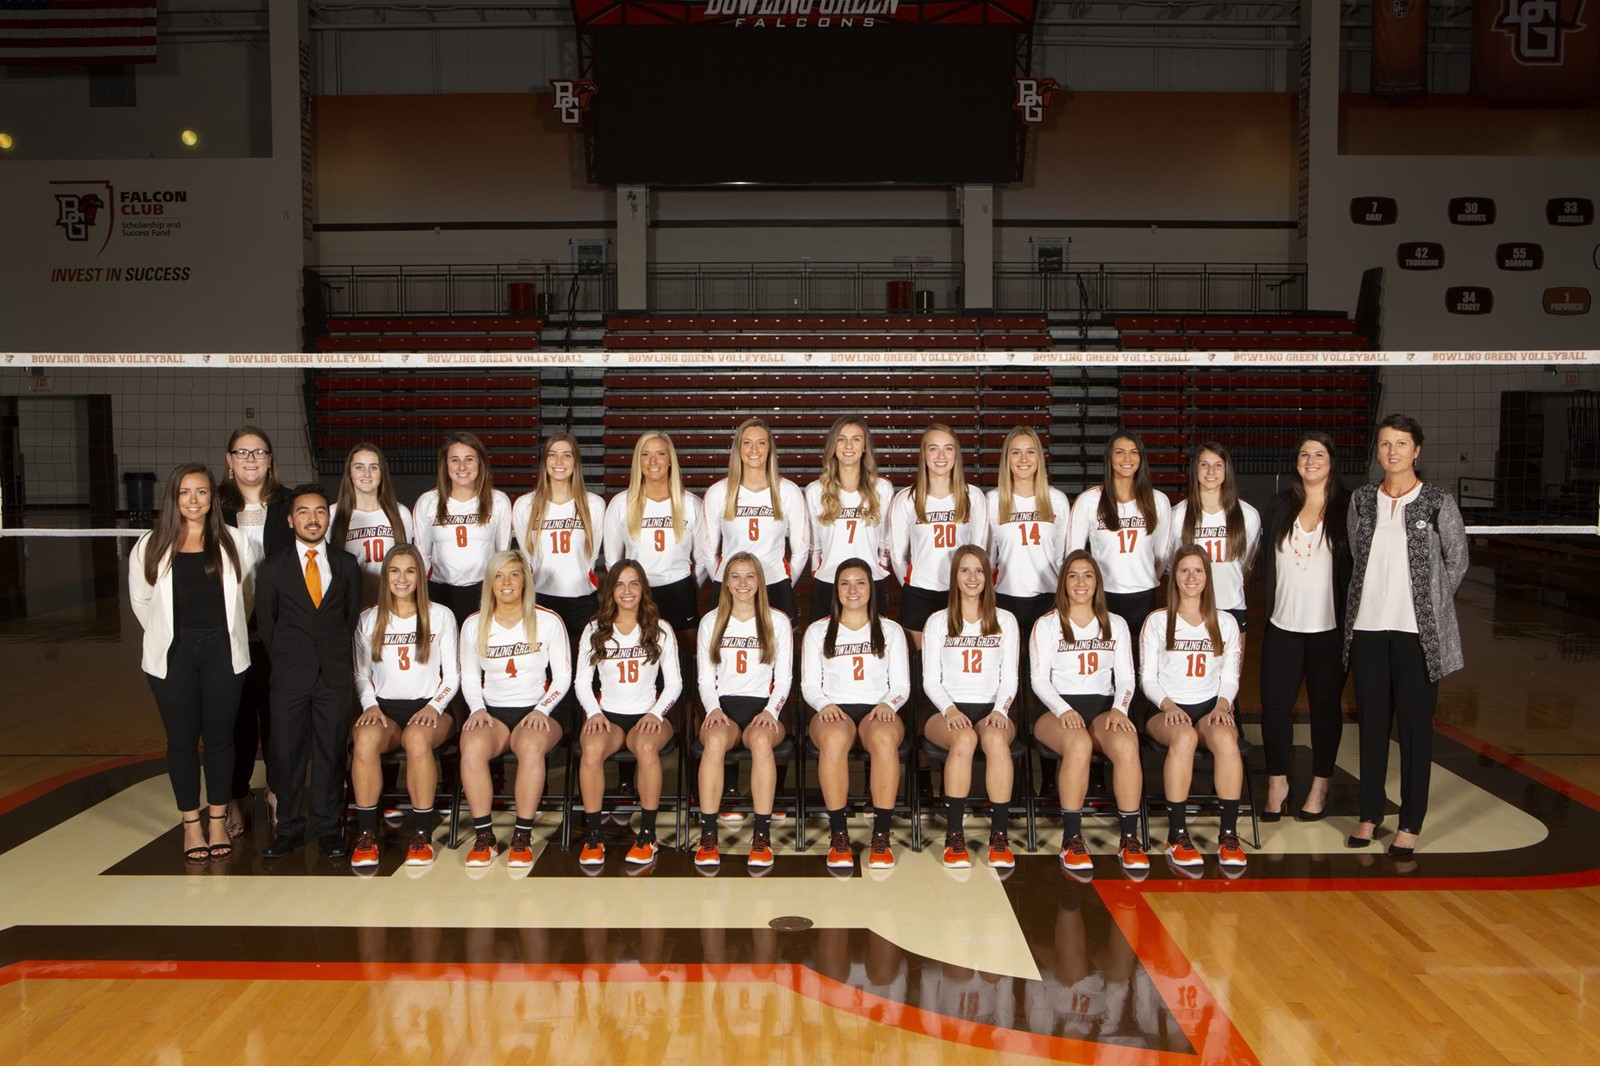 2018 Volleyball Roster Bowling Green State University Athletics